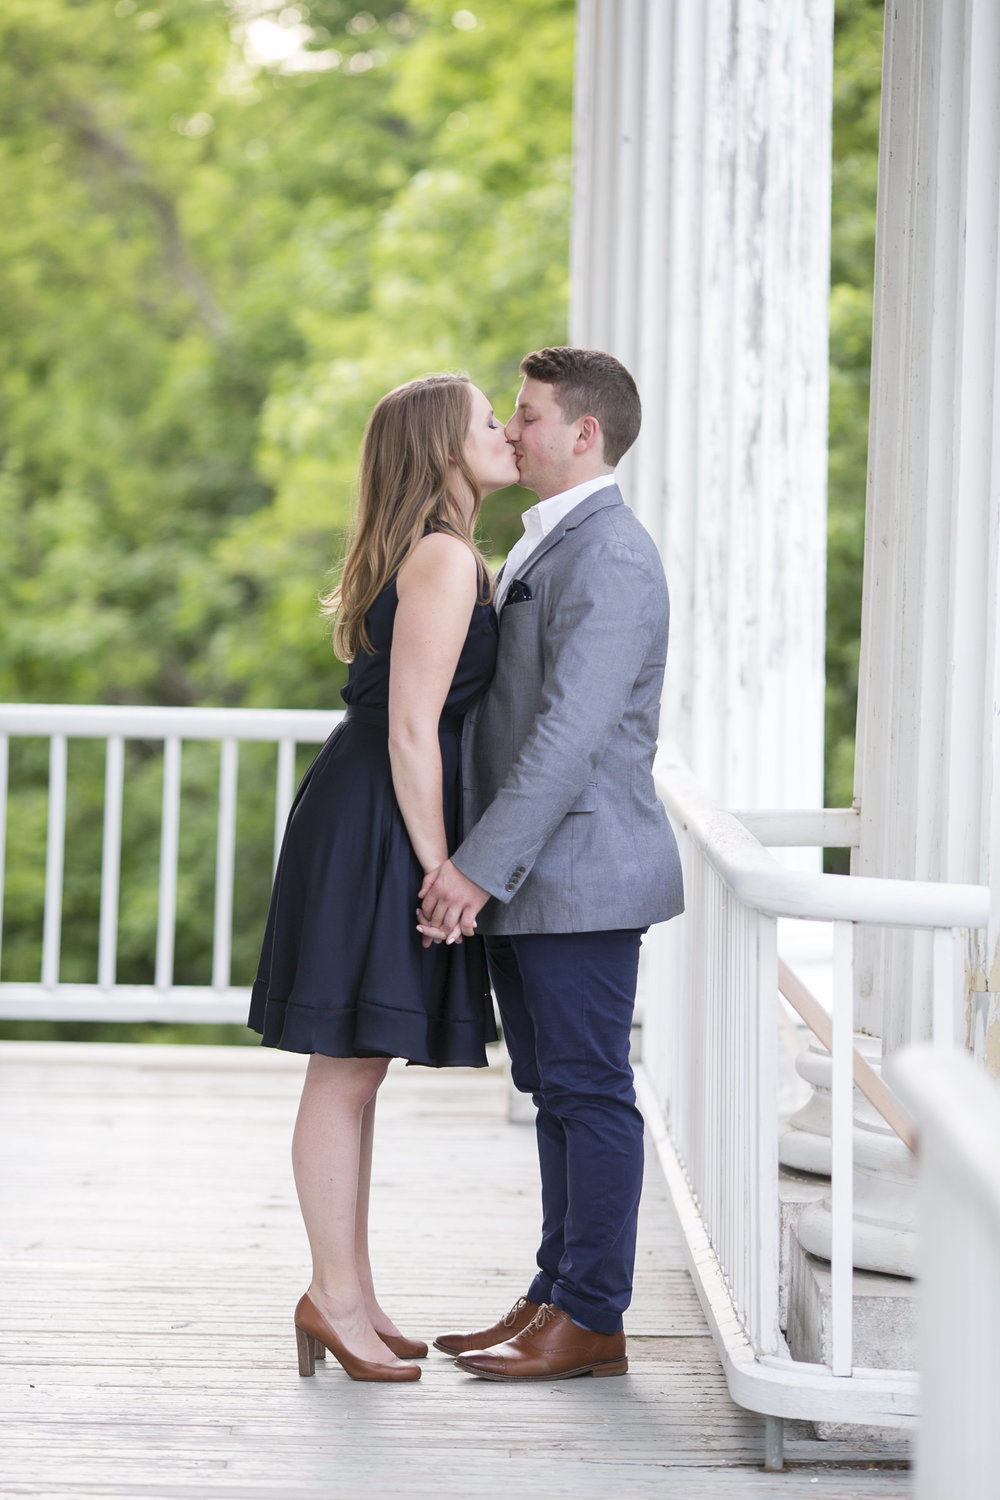 Niagara-on-the-Lake-Summer-Engagement-photos-by-Philosophy-Studios012.JPG